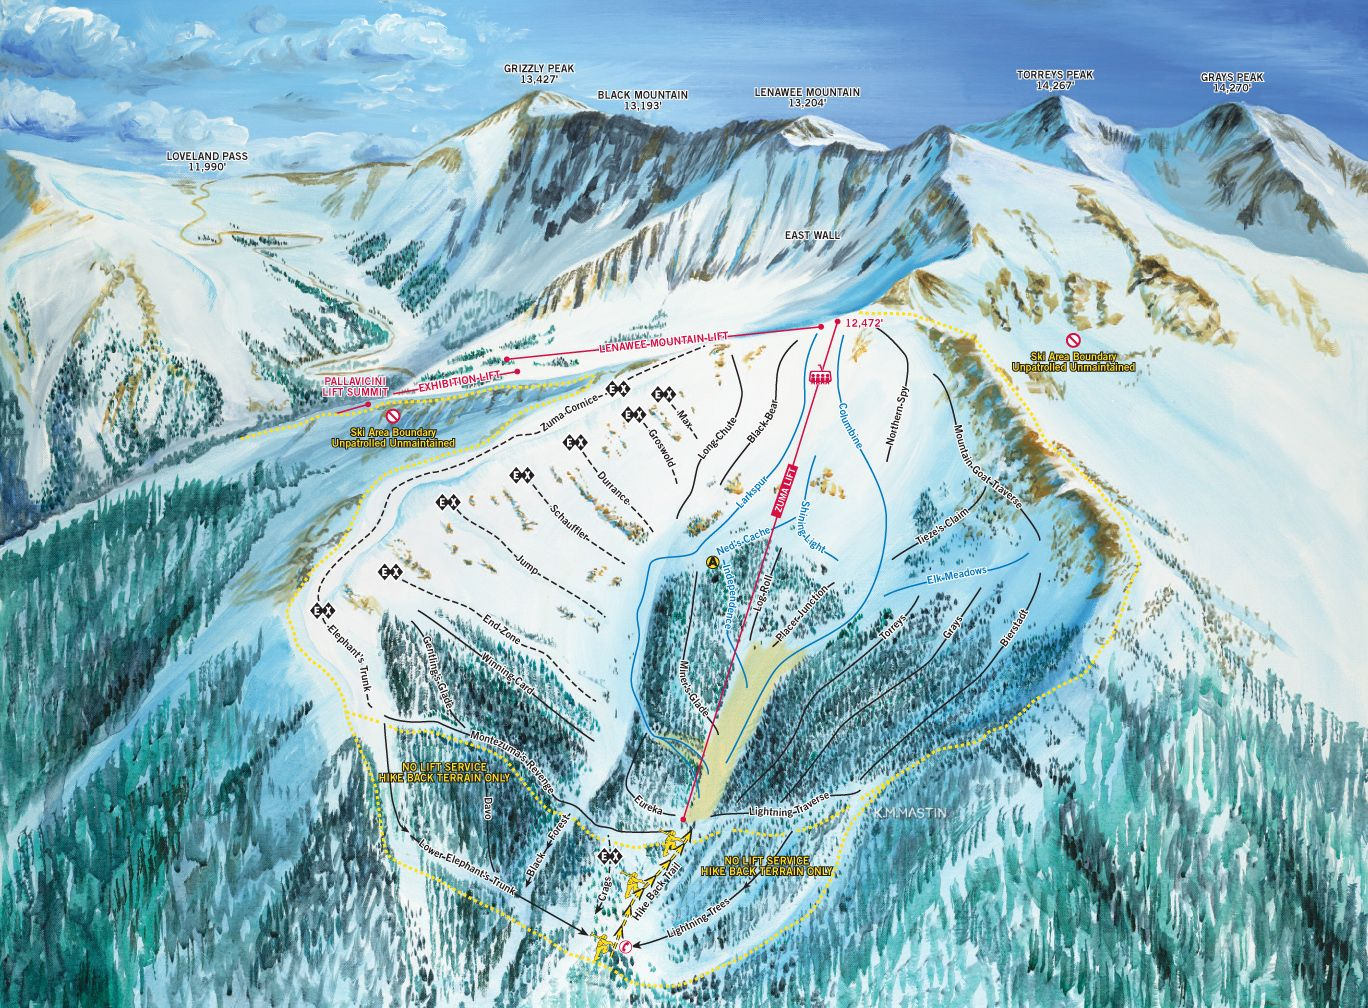 arapahoe basin area trail map back-side